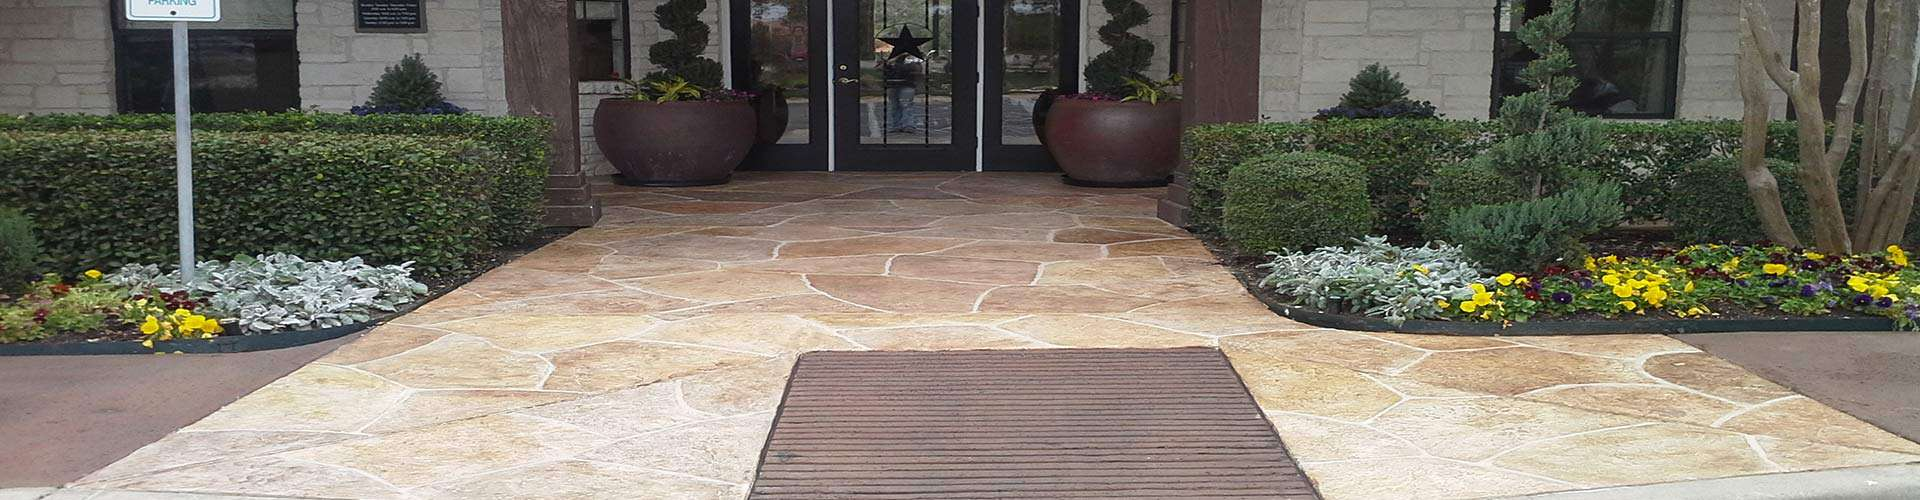 Commercial Entries Limestone Overlay